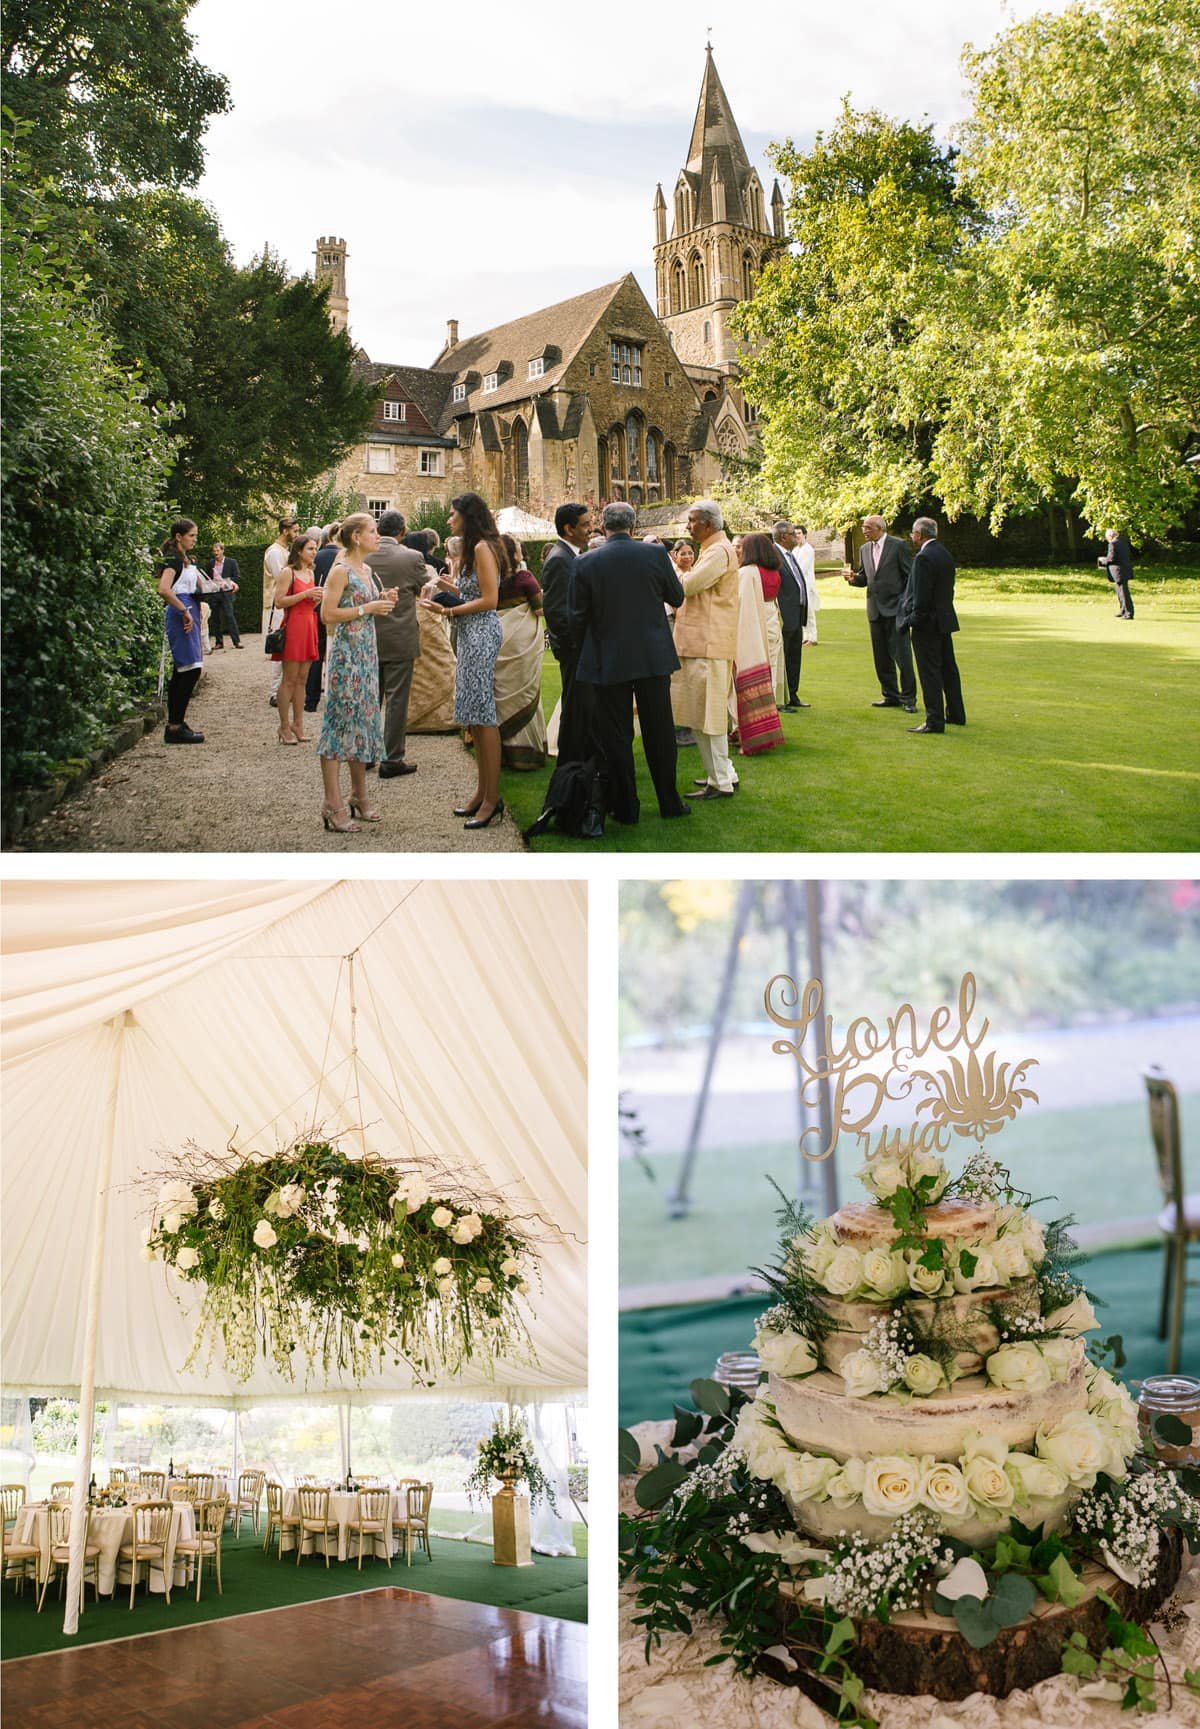 Details from Indian wedding at Christchutch college - hanging flowers and tiered wedding cake